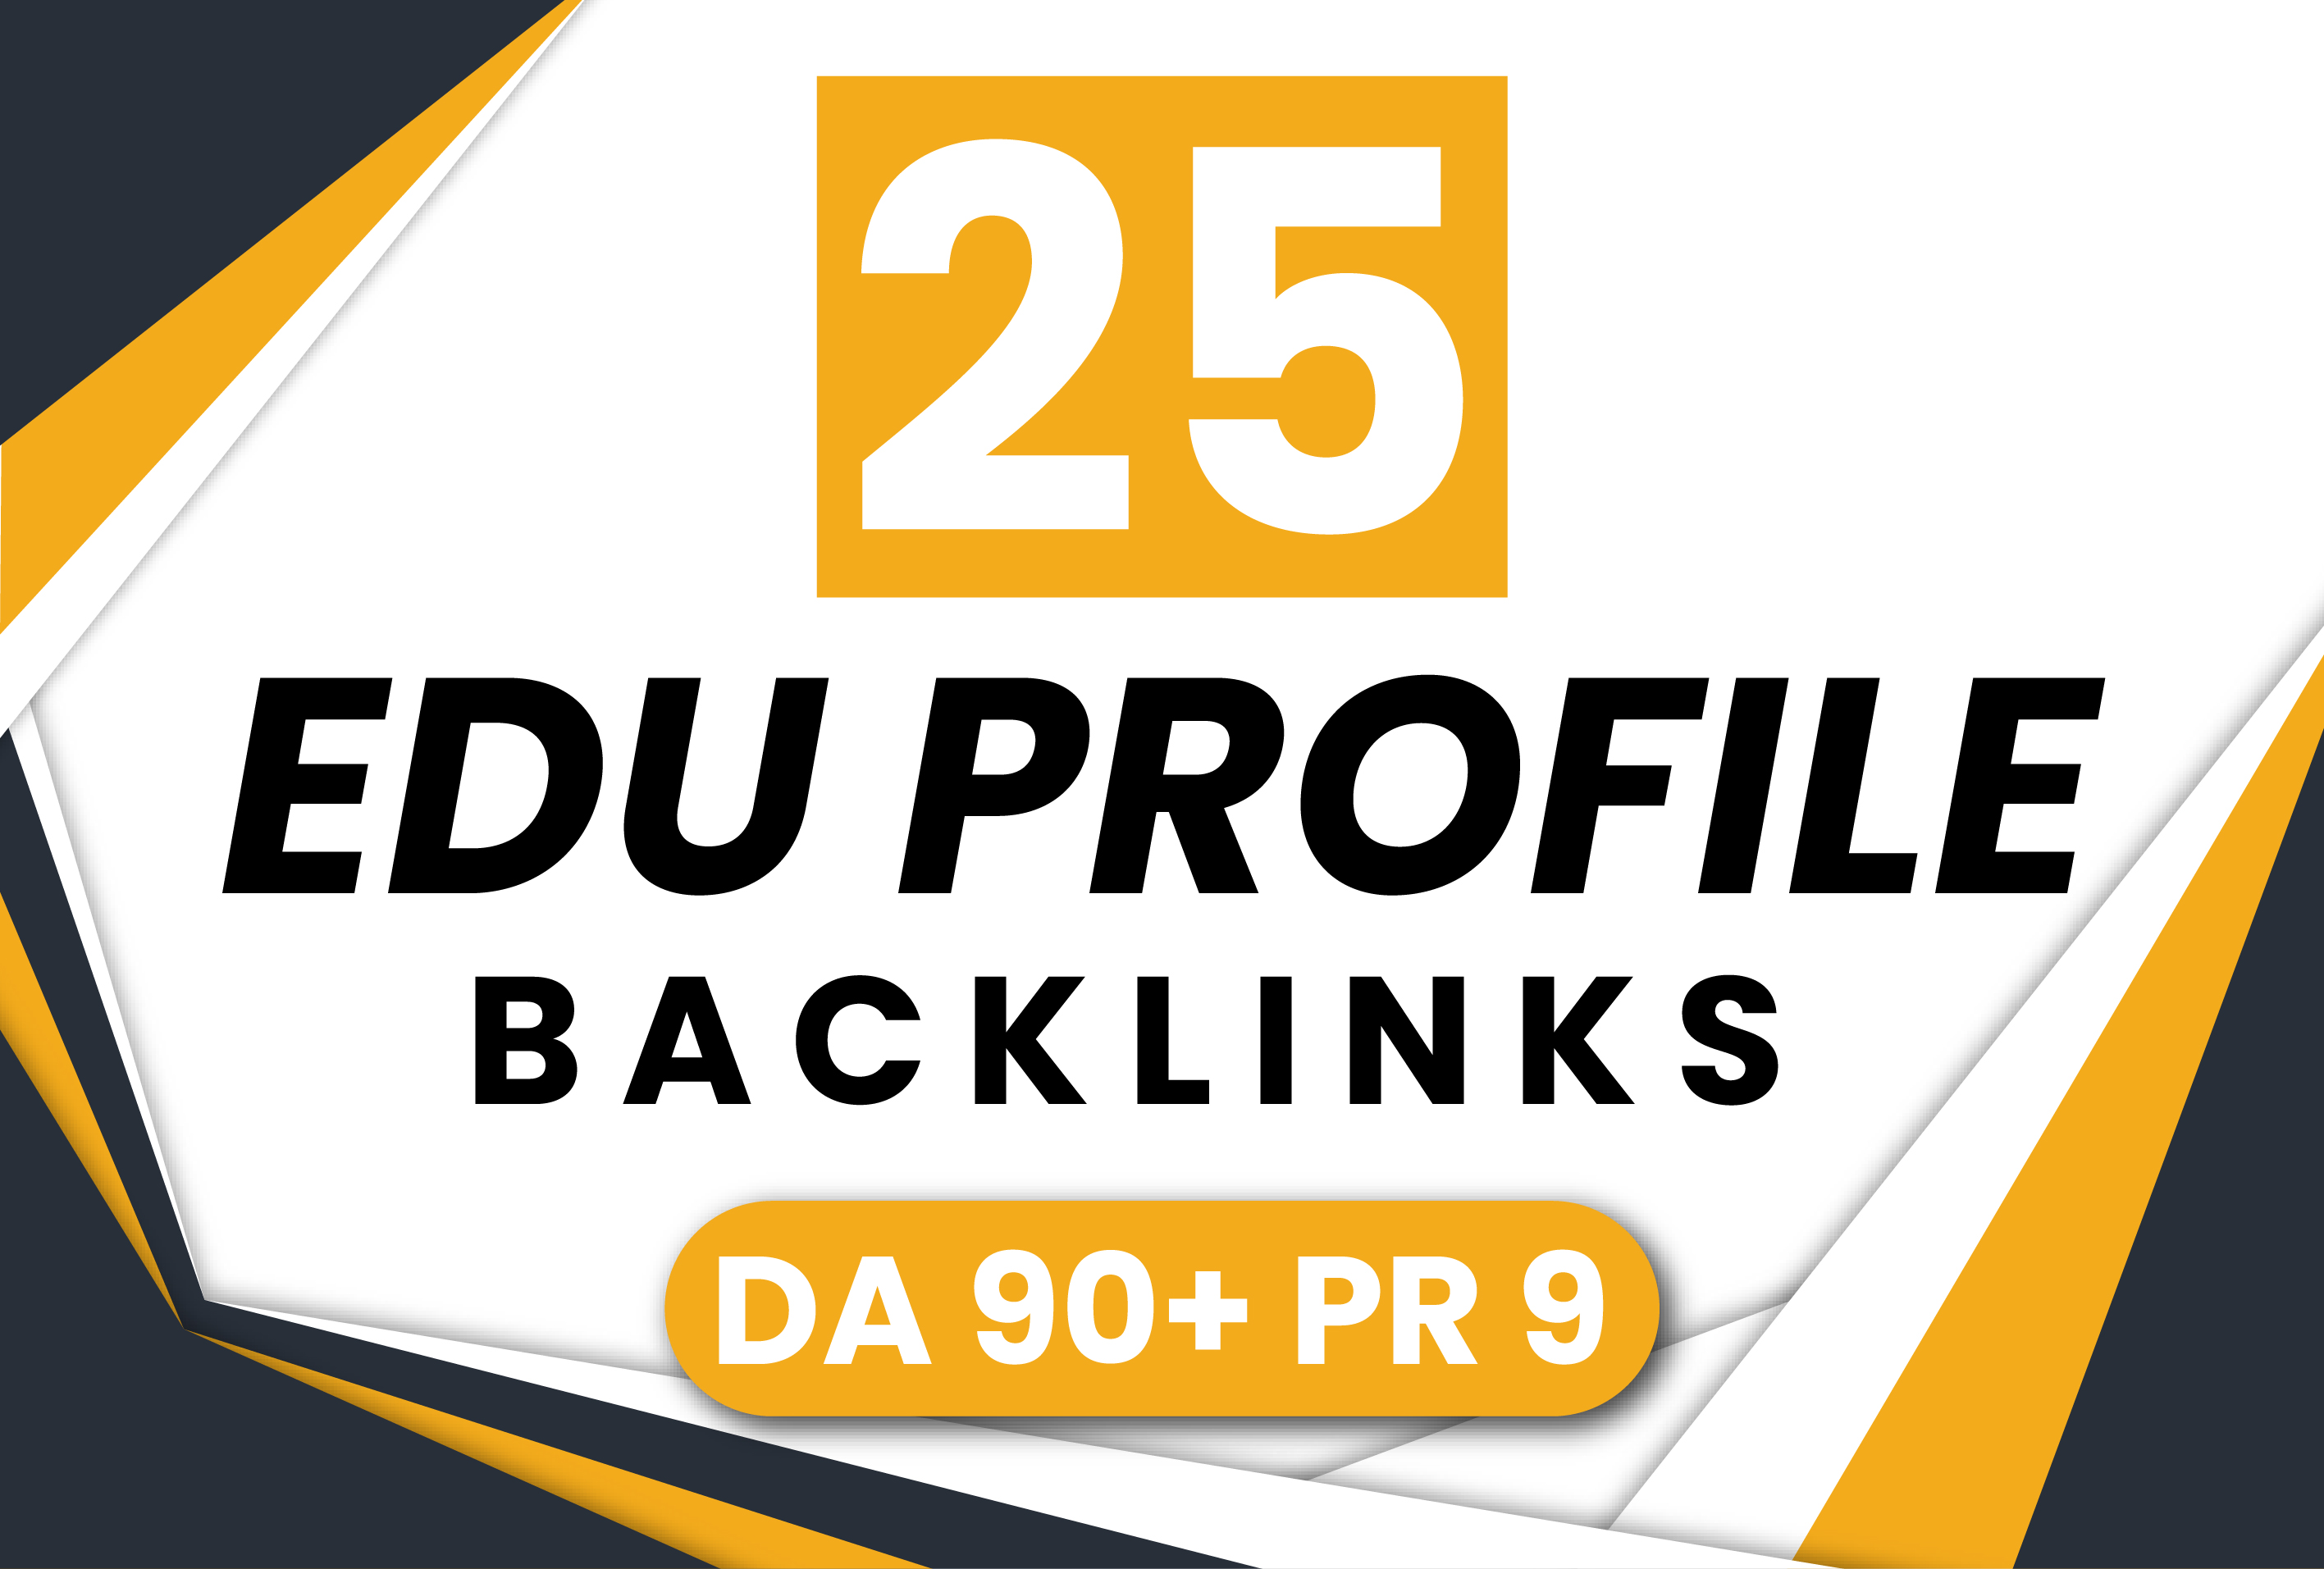 DO 25 PLUS US BASED EDU-GOV Backlinks ON DA90 UNIQUE DOMAINS Manually